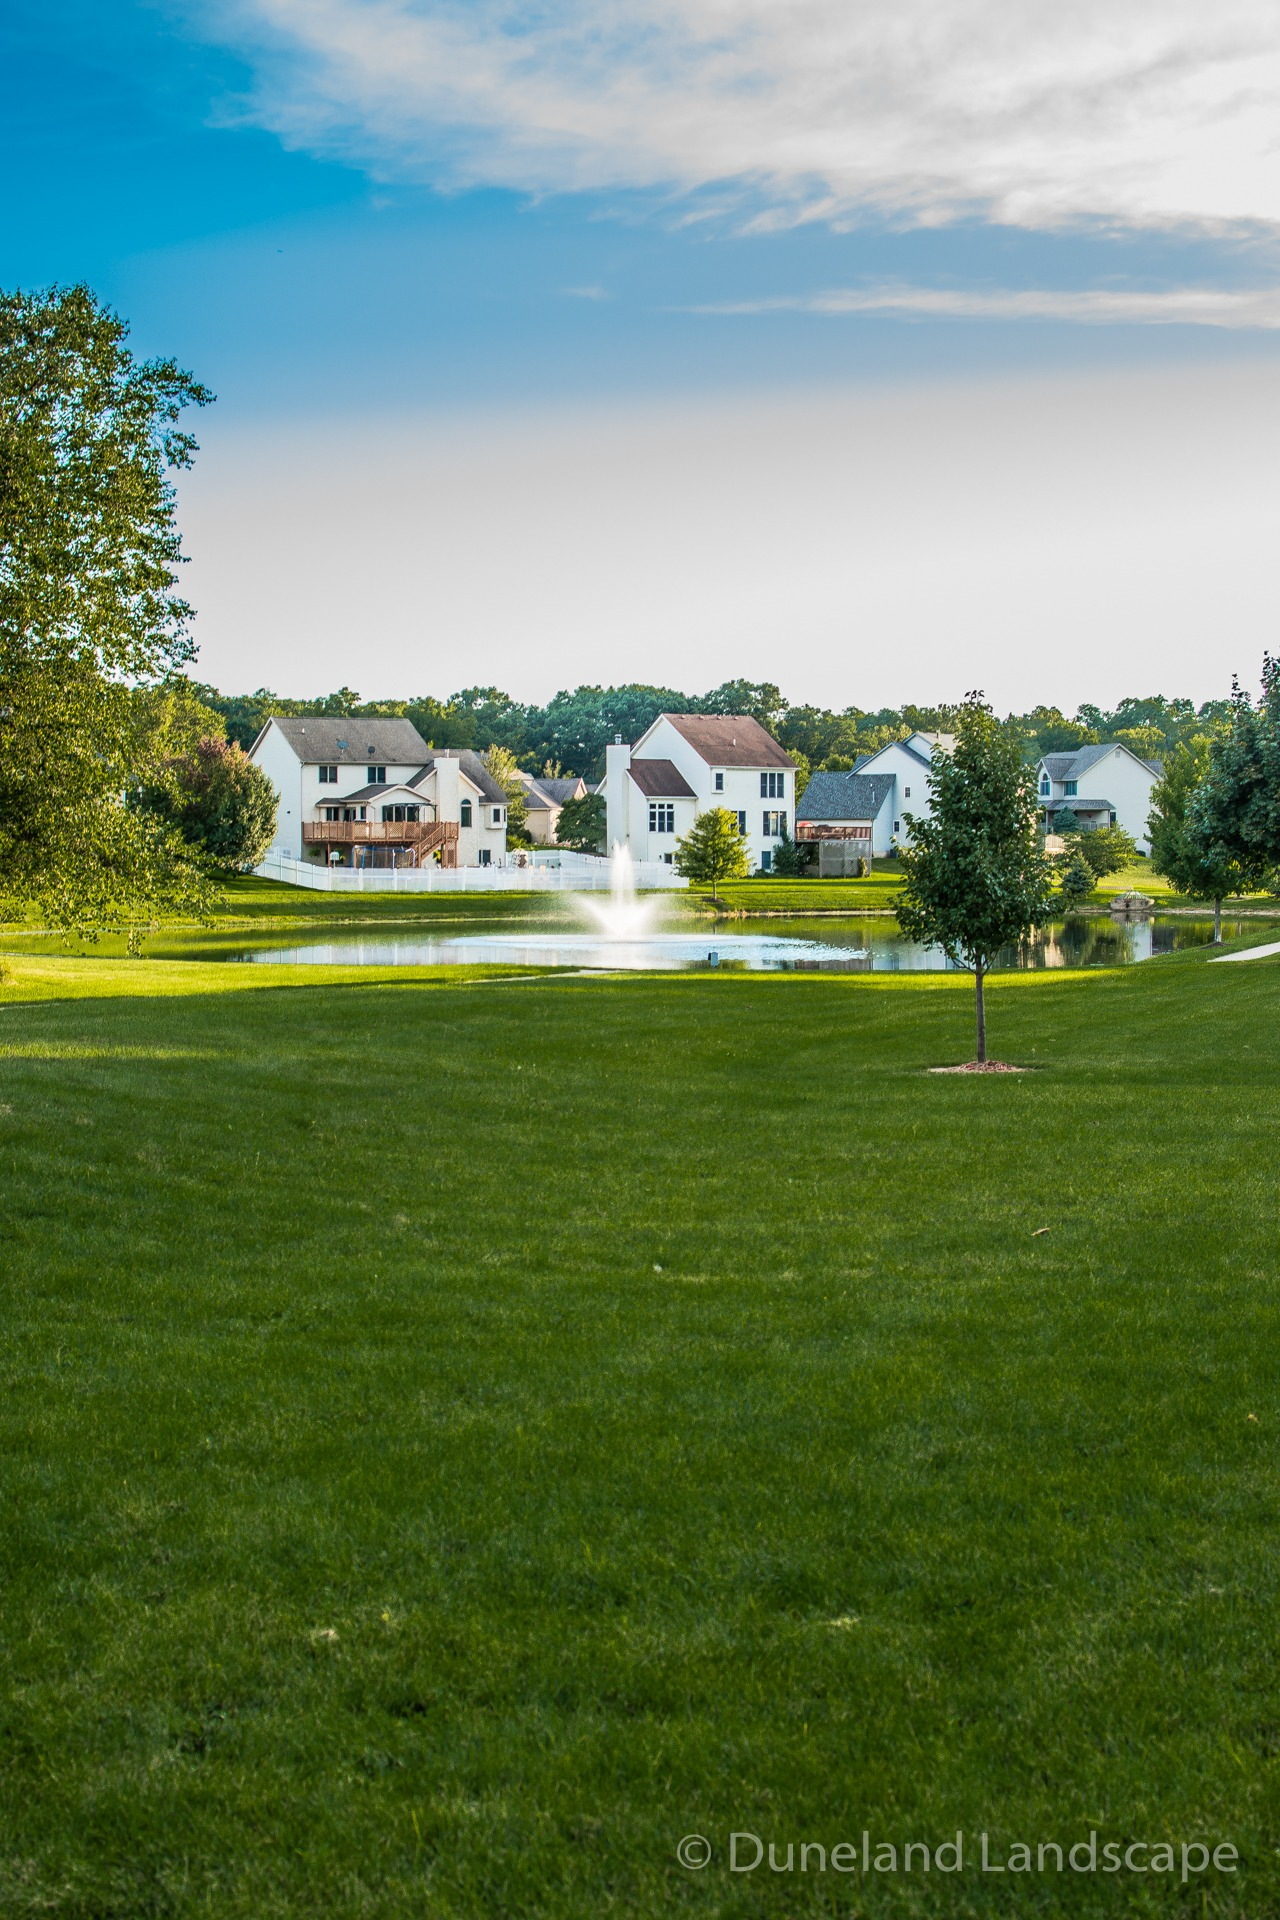 residential community lawn care company